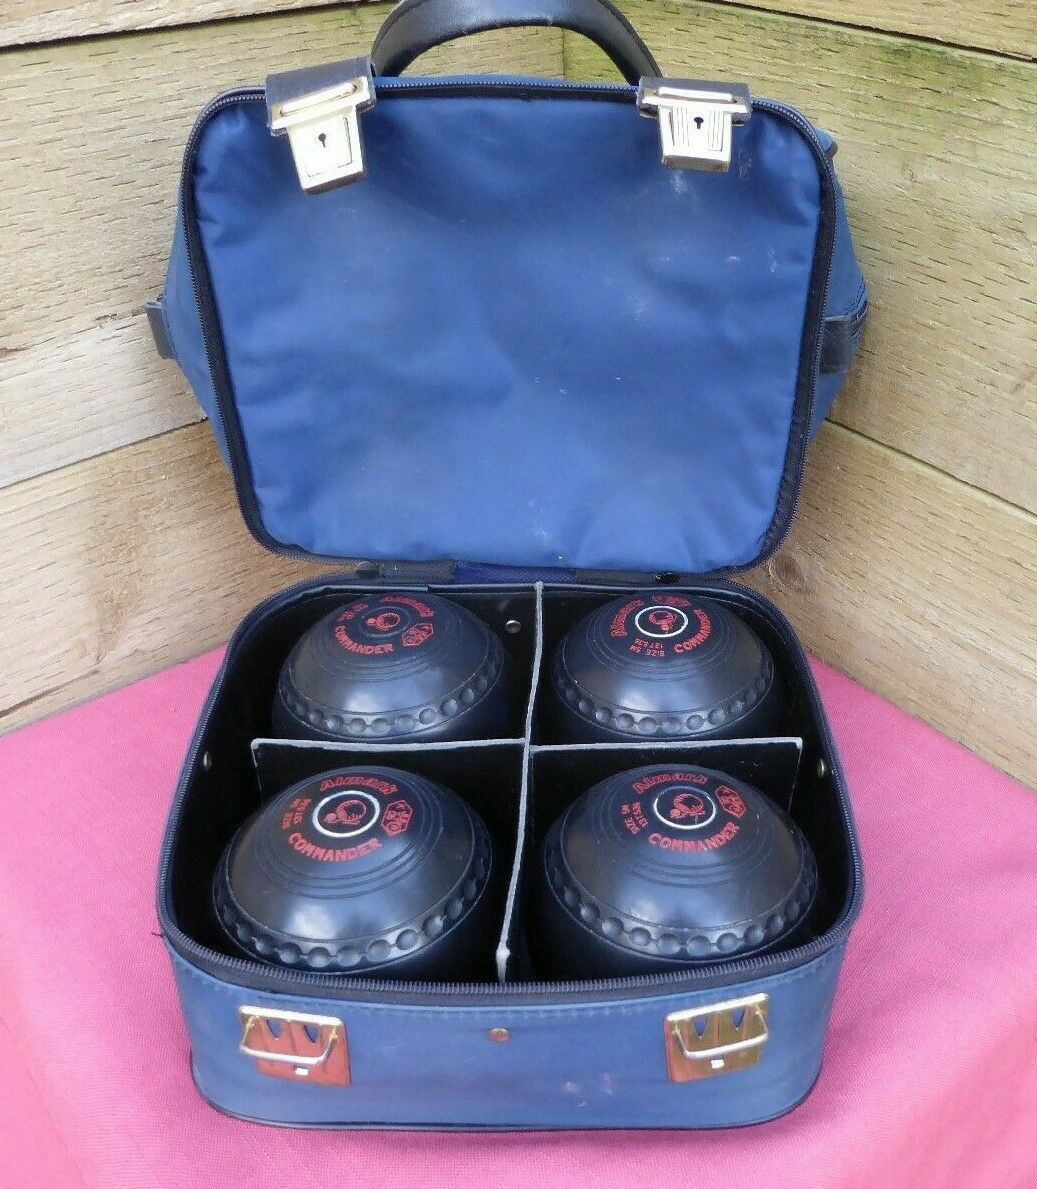 4 Almark Commander Bowls Size 5M Model 13T536 & Mitre Carry Case